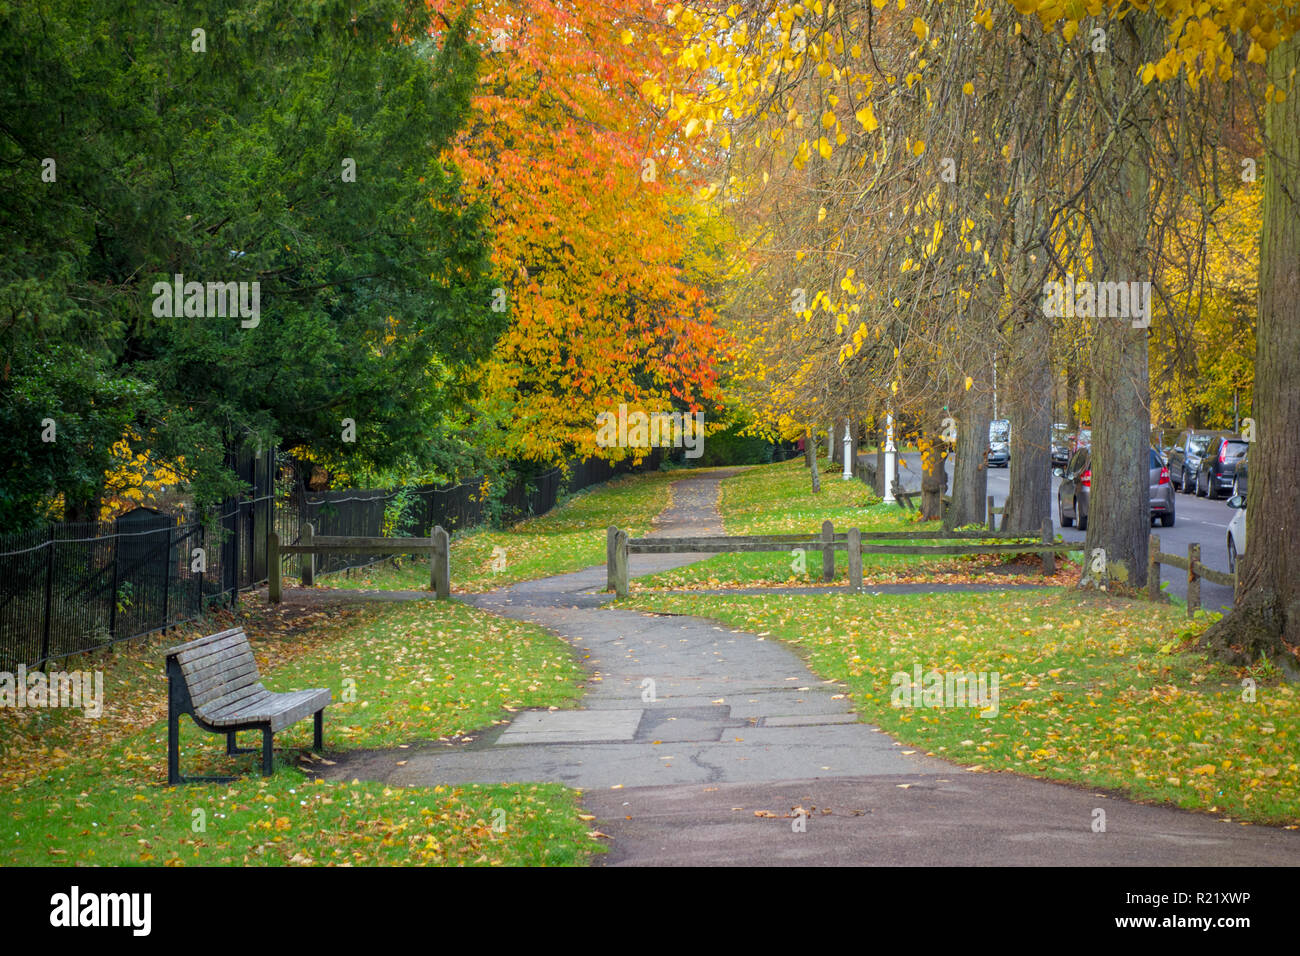 Red and yellow autumn leaves on trees above a pedestrian footpath on The Backs in Cambridge, UK - Stock Image